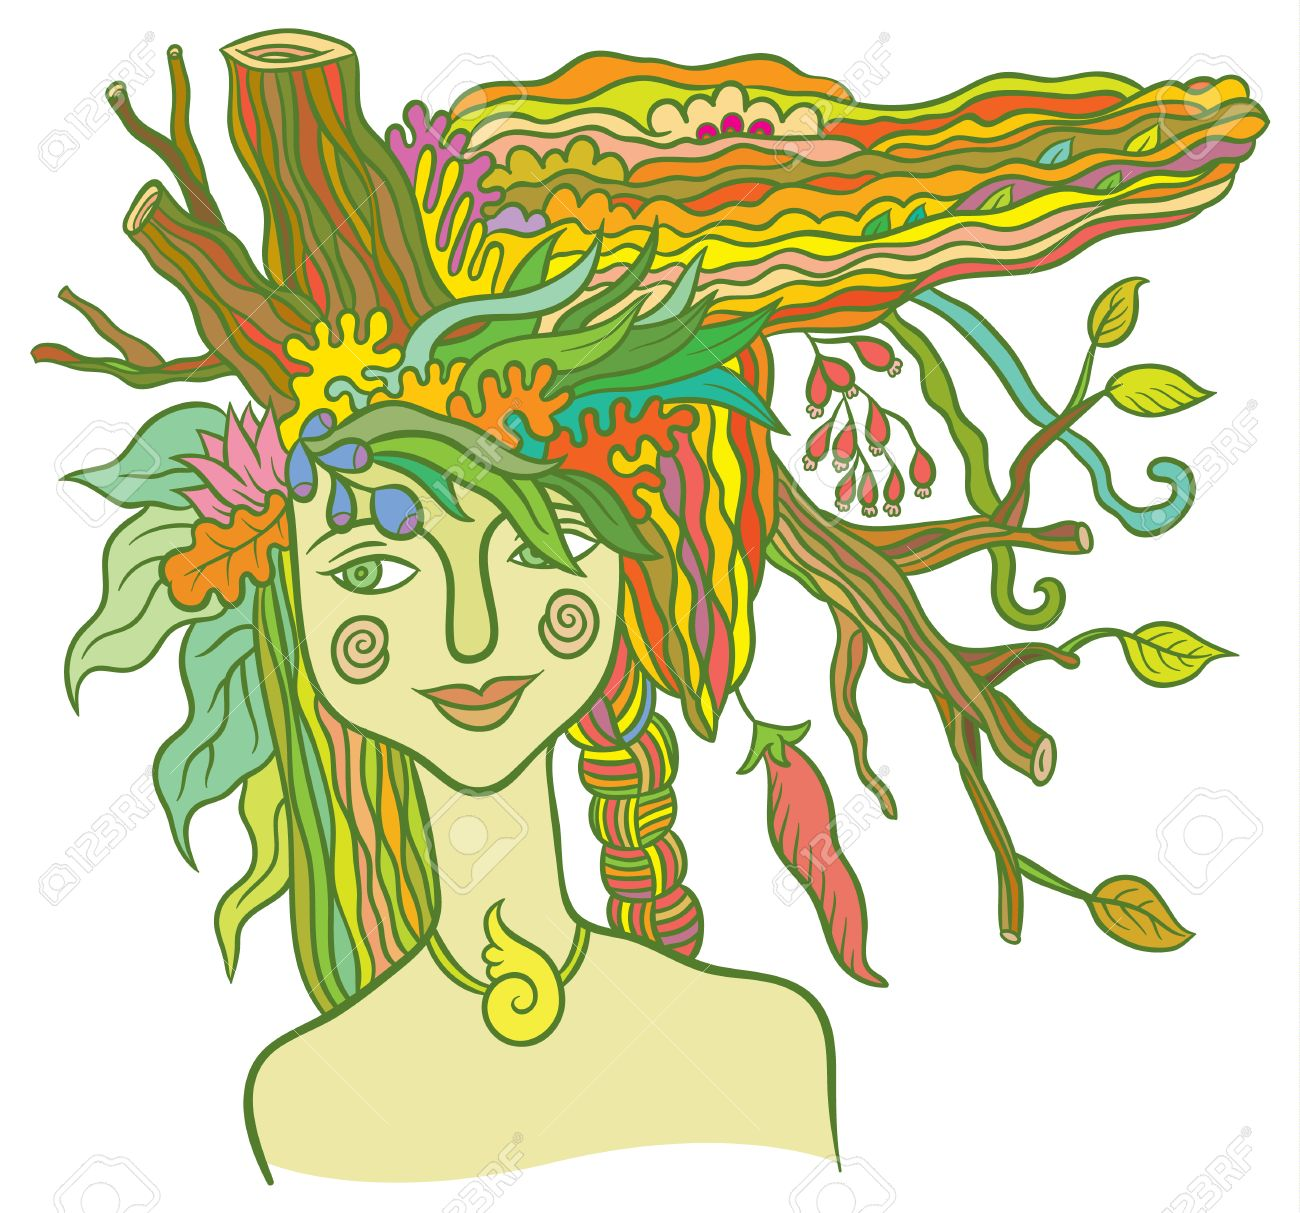 Goddess Mother Nature - symbol of the spirit of nature - hand drawing vector illustration - 51198240